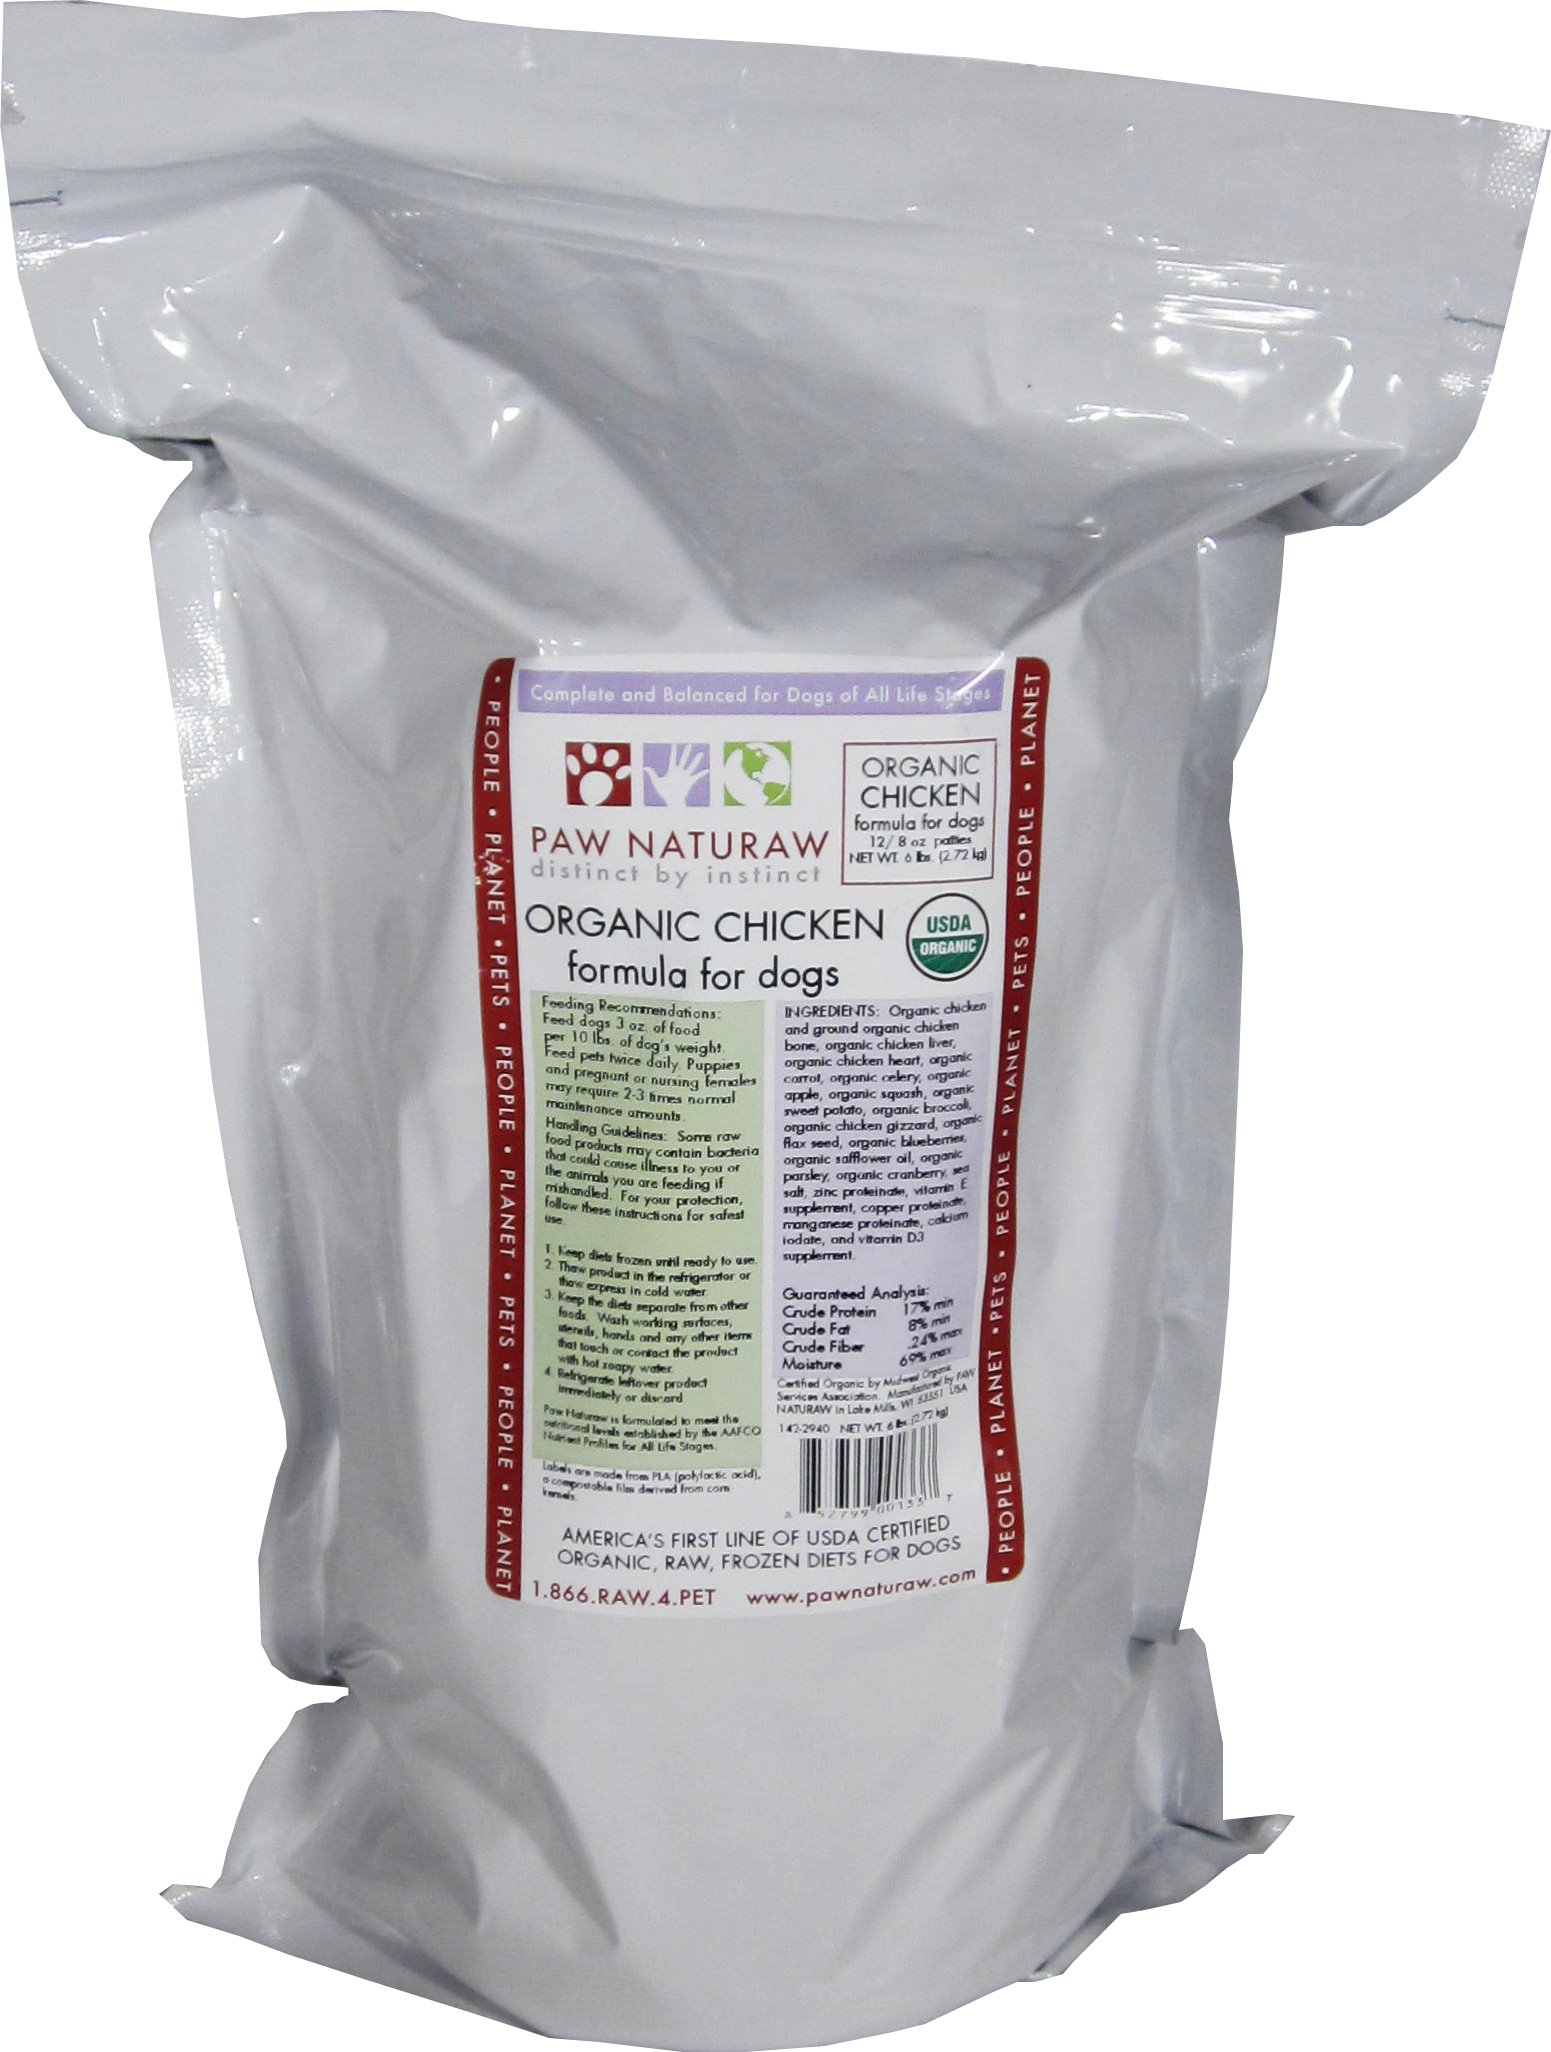 Paw Naturaw Organic Chicken Formula for Dogs, Patties (Pack of 5)